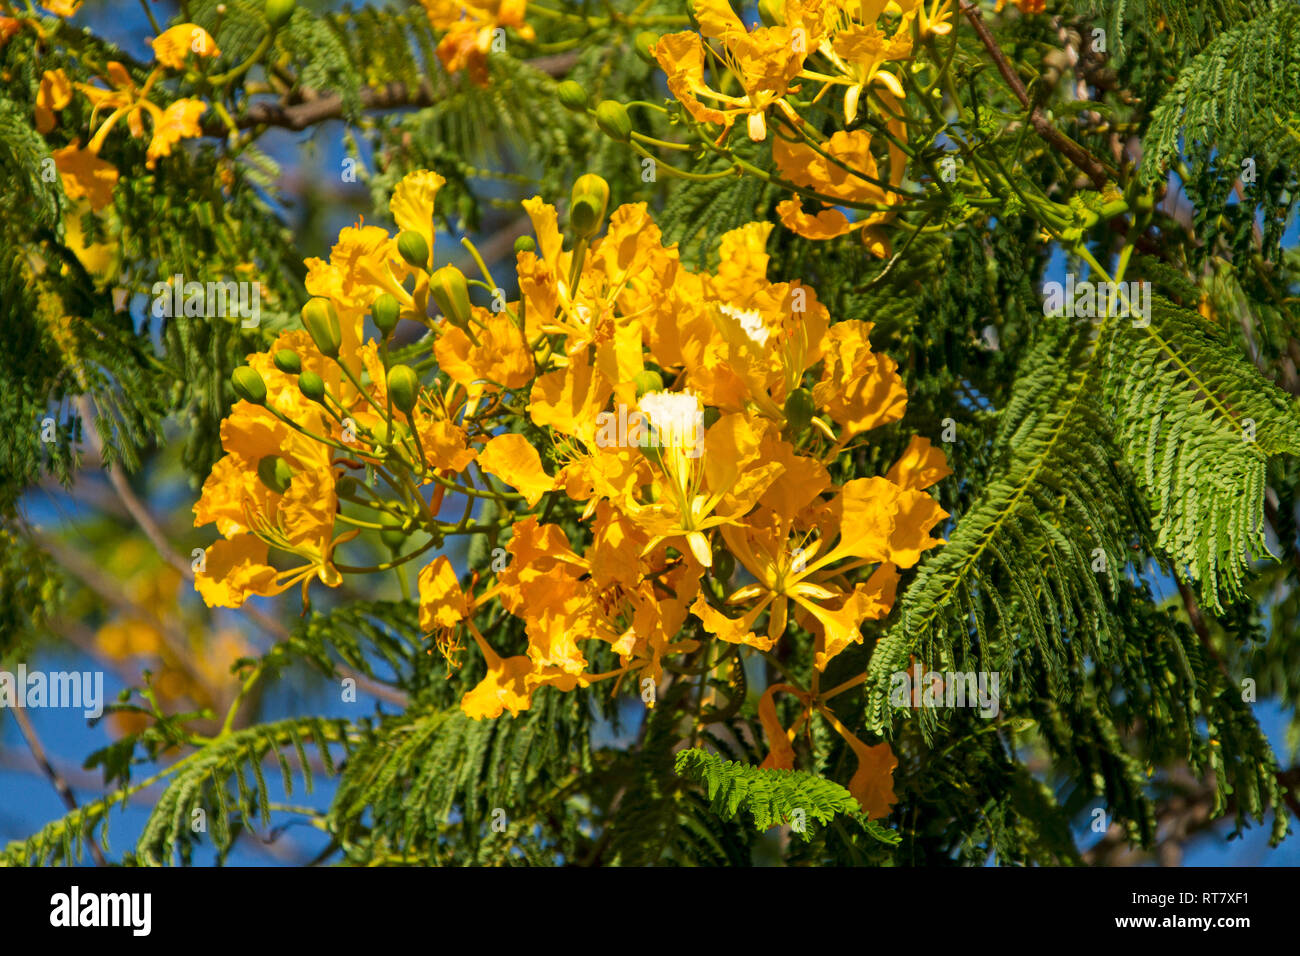 Cluster of vivid yellow flowers and bright green leaves of Delonix regia var. flavida, unusual yellow flowering variety of poinciana tree - Stock Image